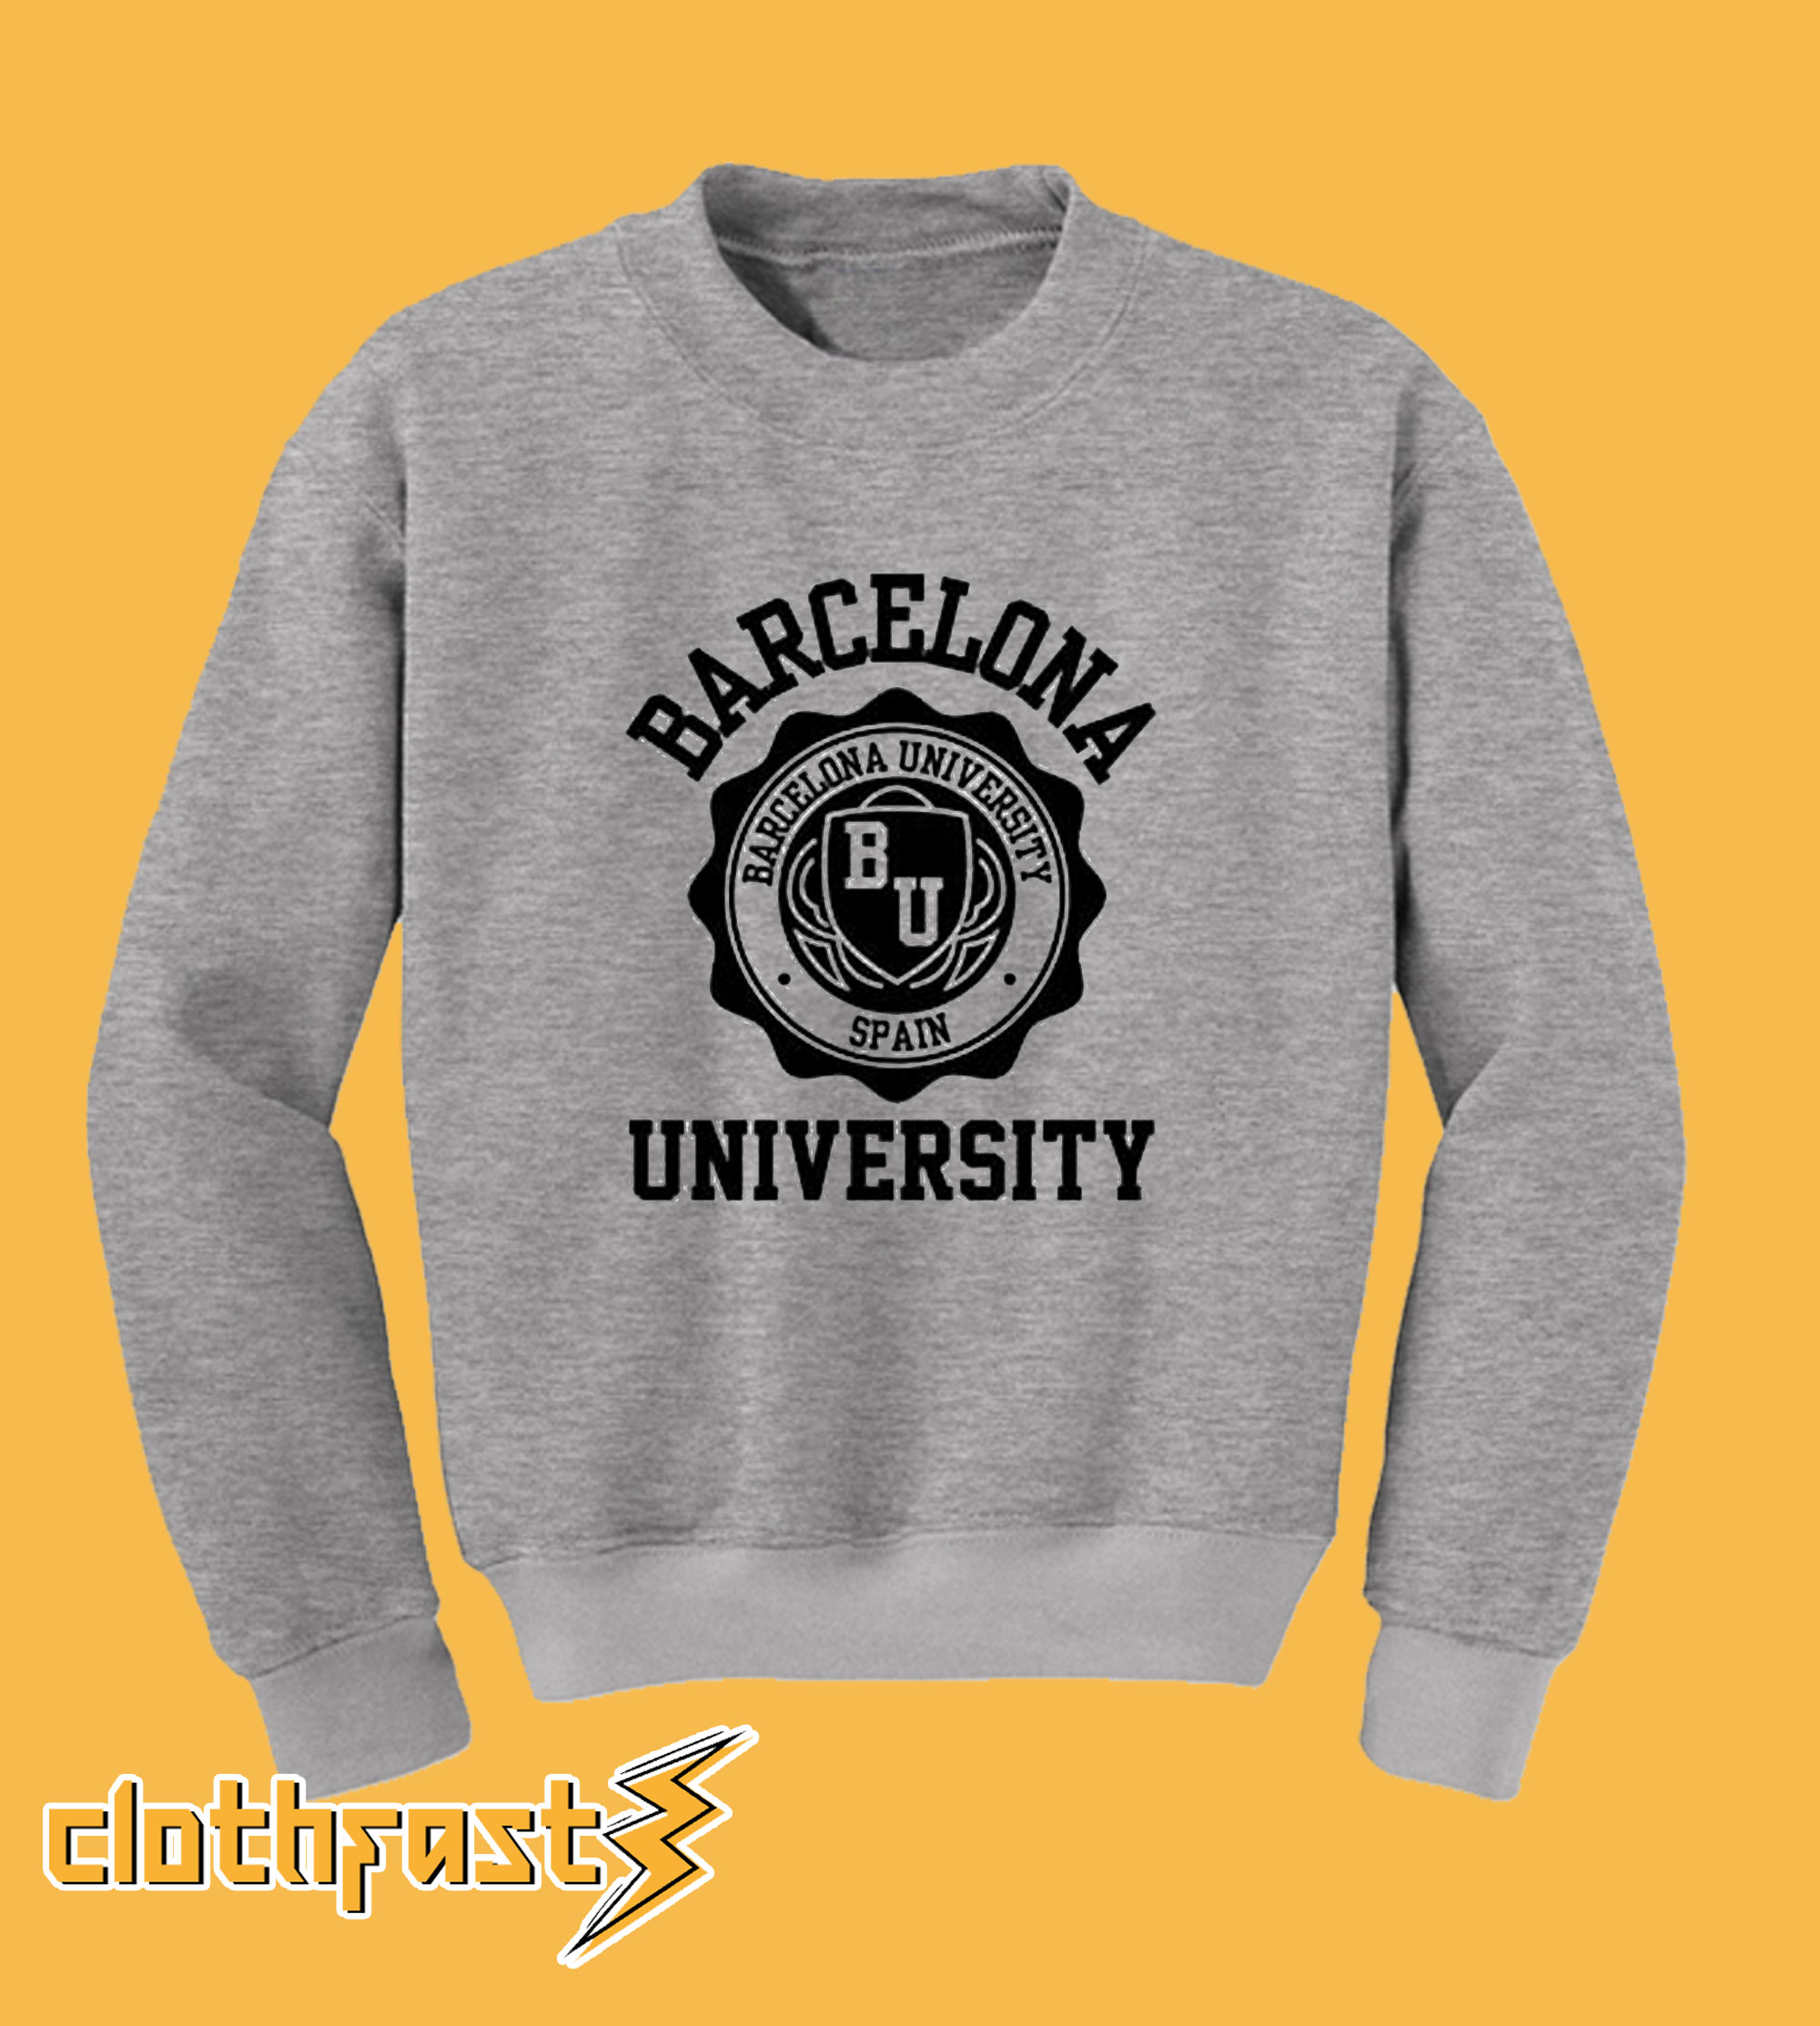 Barcelona University grey sweatshirt